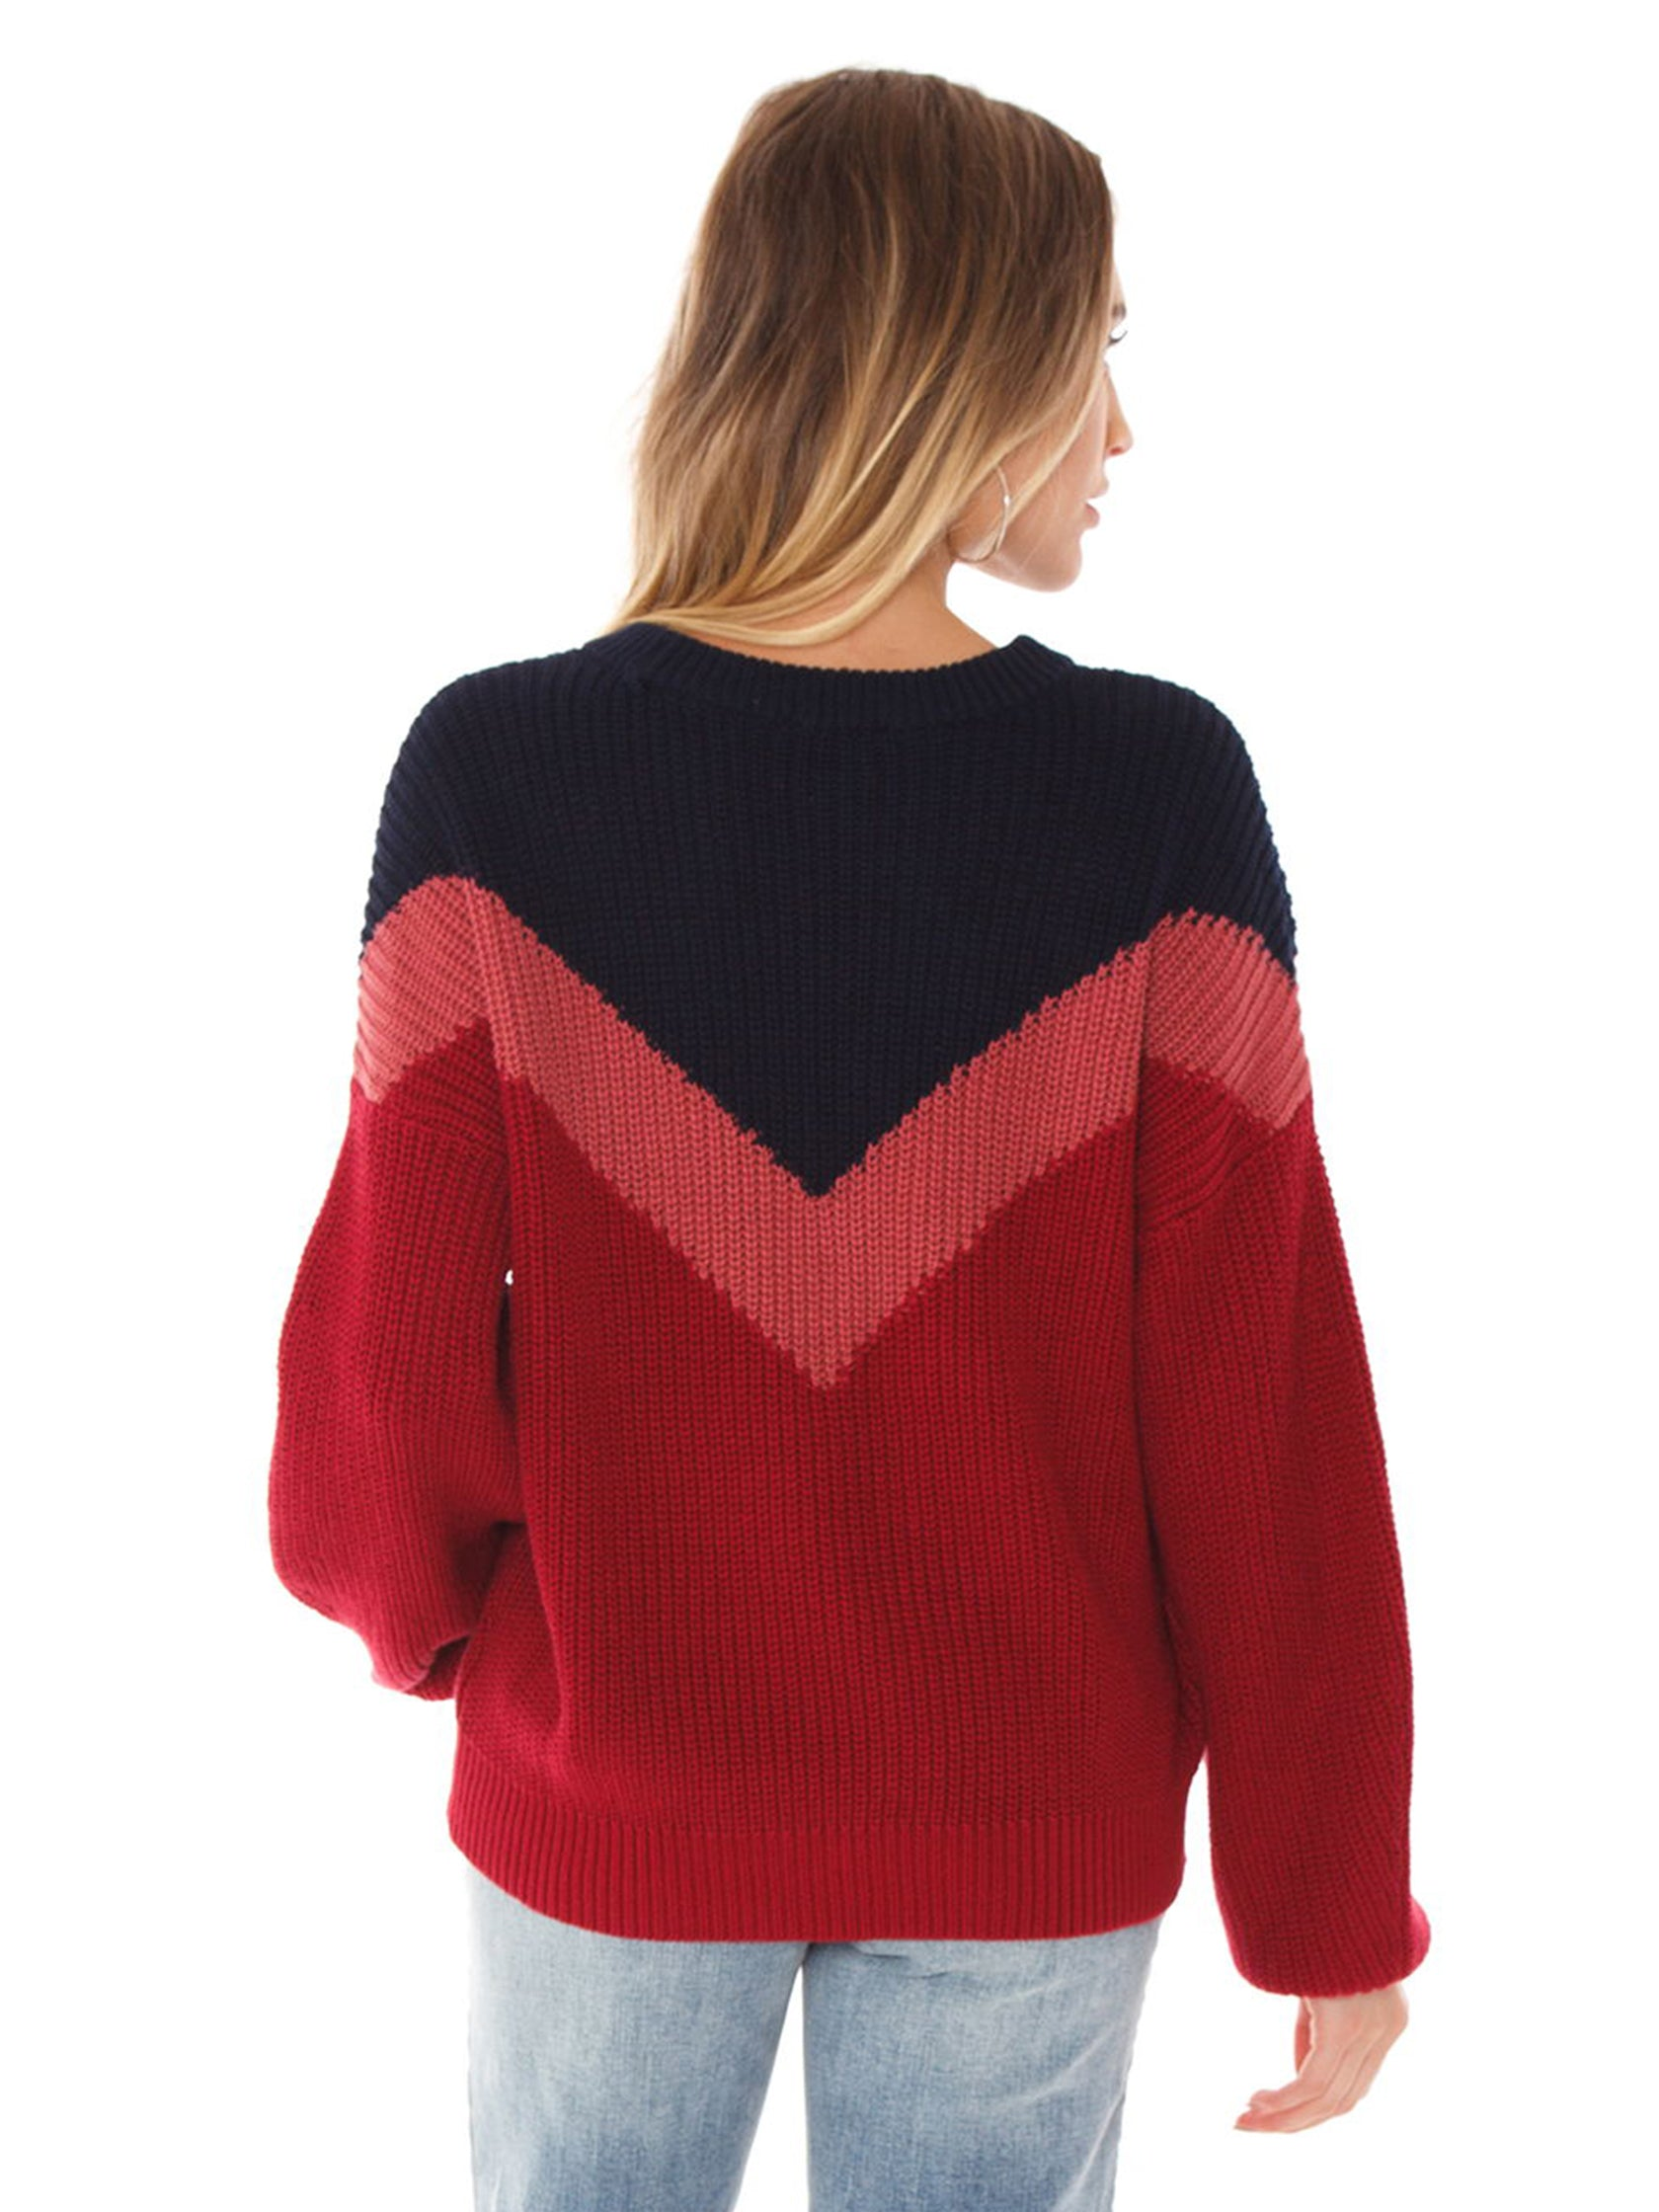 Women outfit in a sweater rental from 1.STATE called Chevron Front Shaker Crew Neck Cotton Sweater